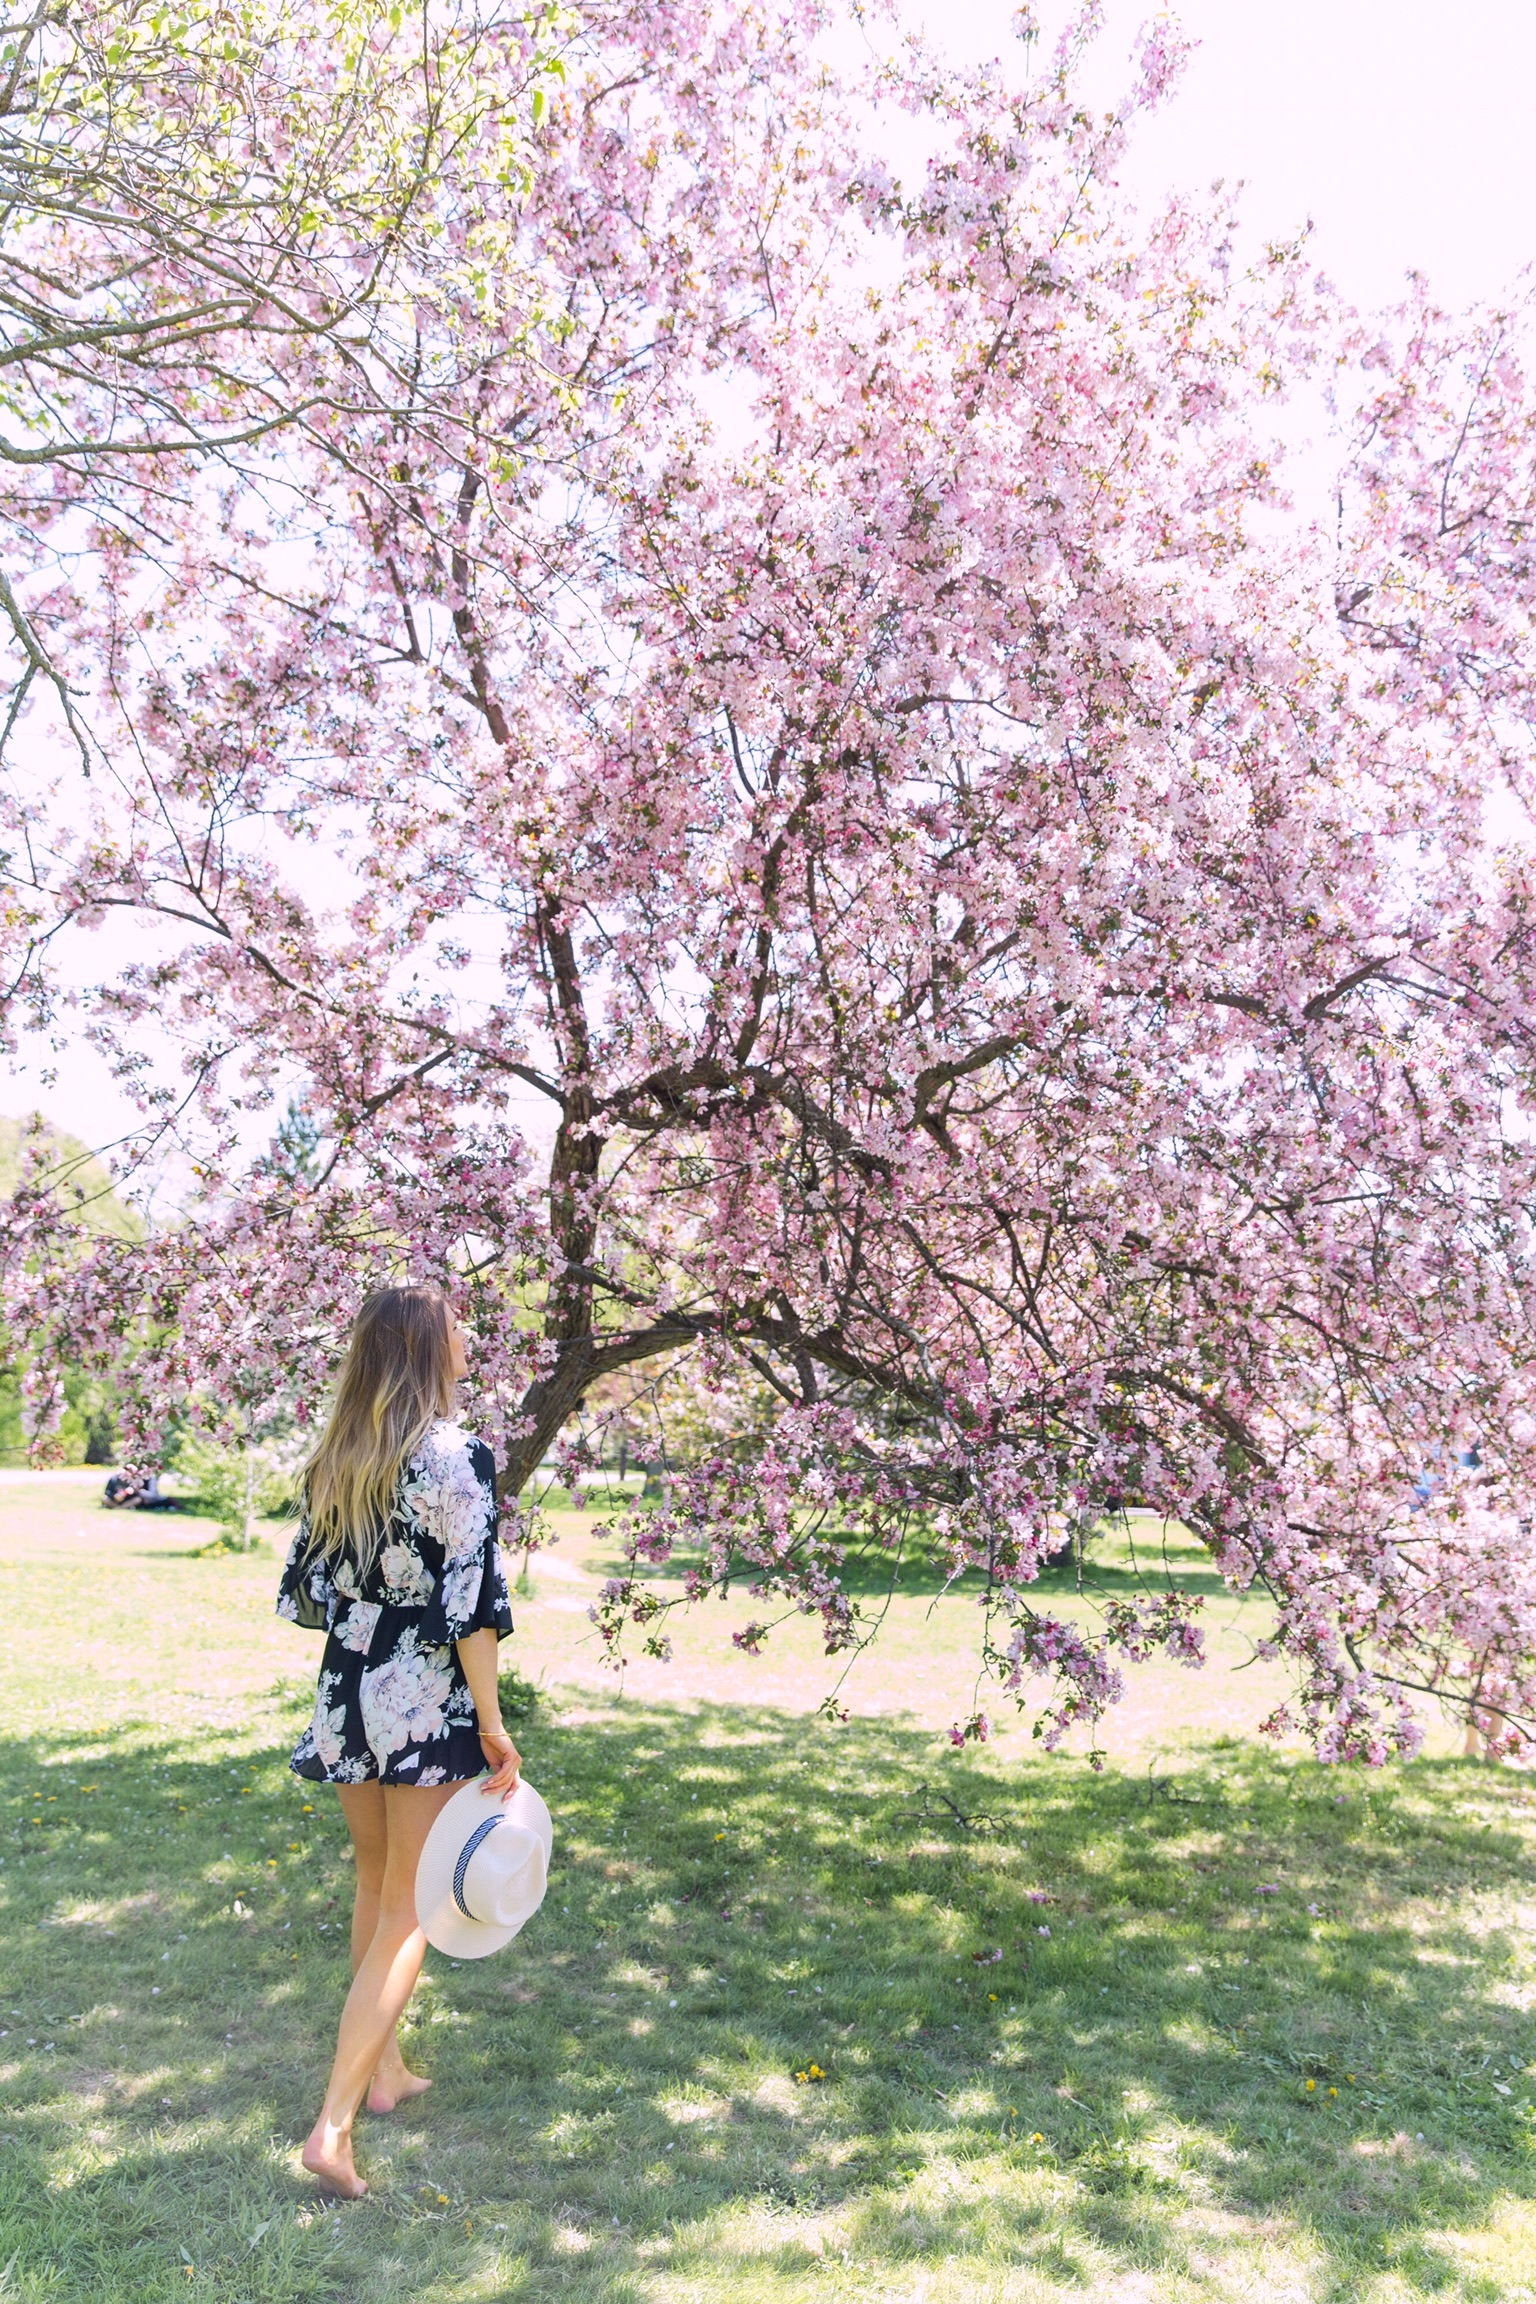 1 person, cherry blossom trees ottawa